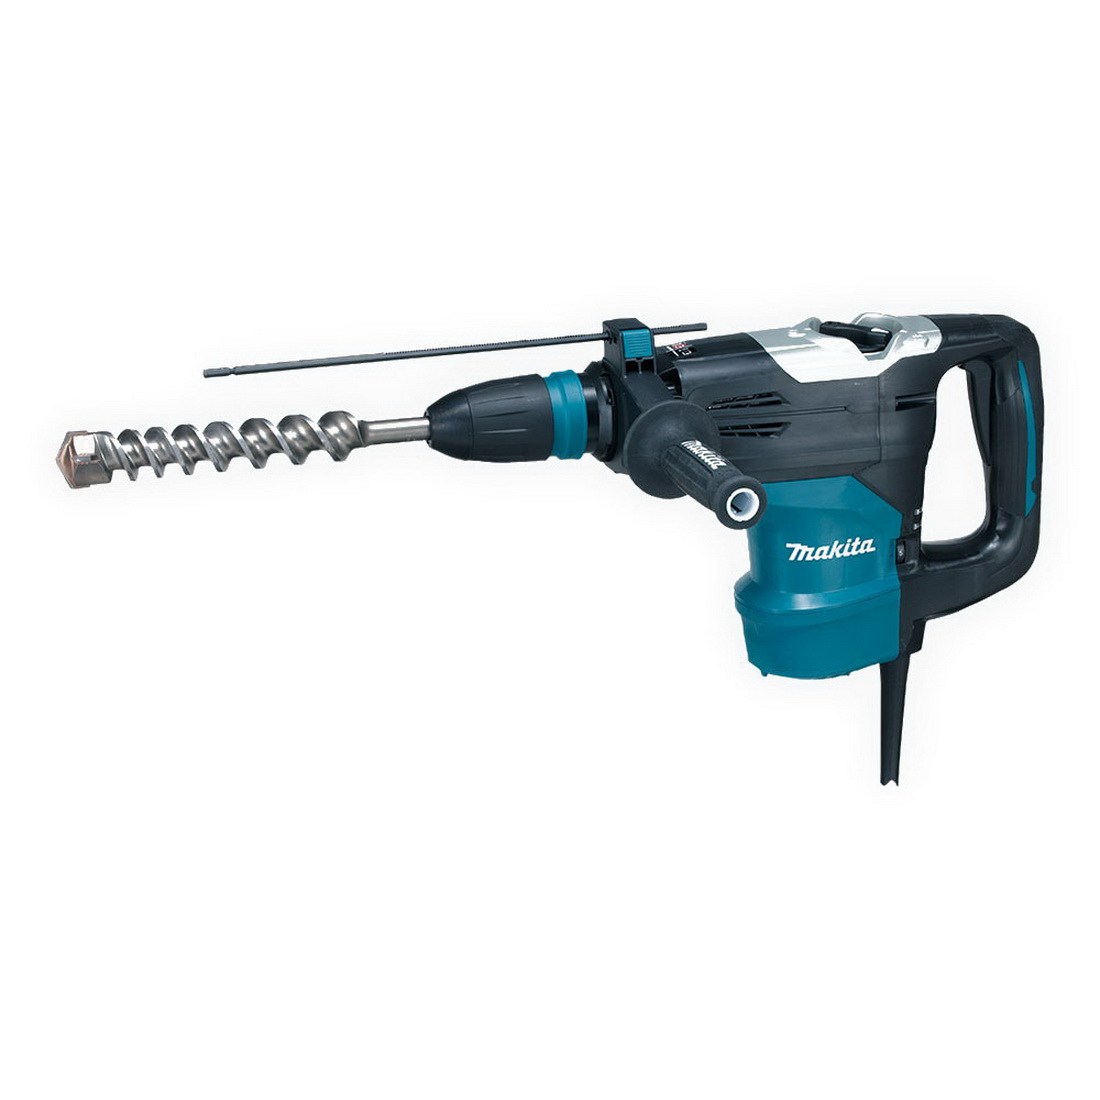 850W 13mm SDS-Plus Rotary Hammer